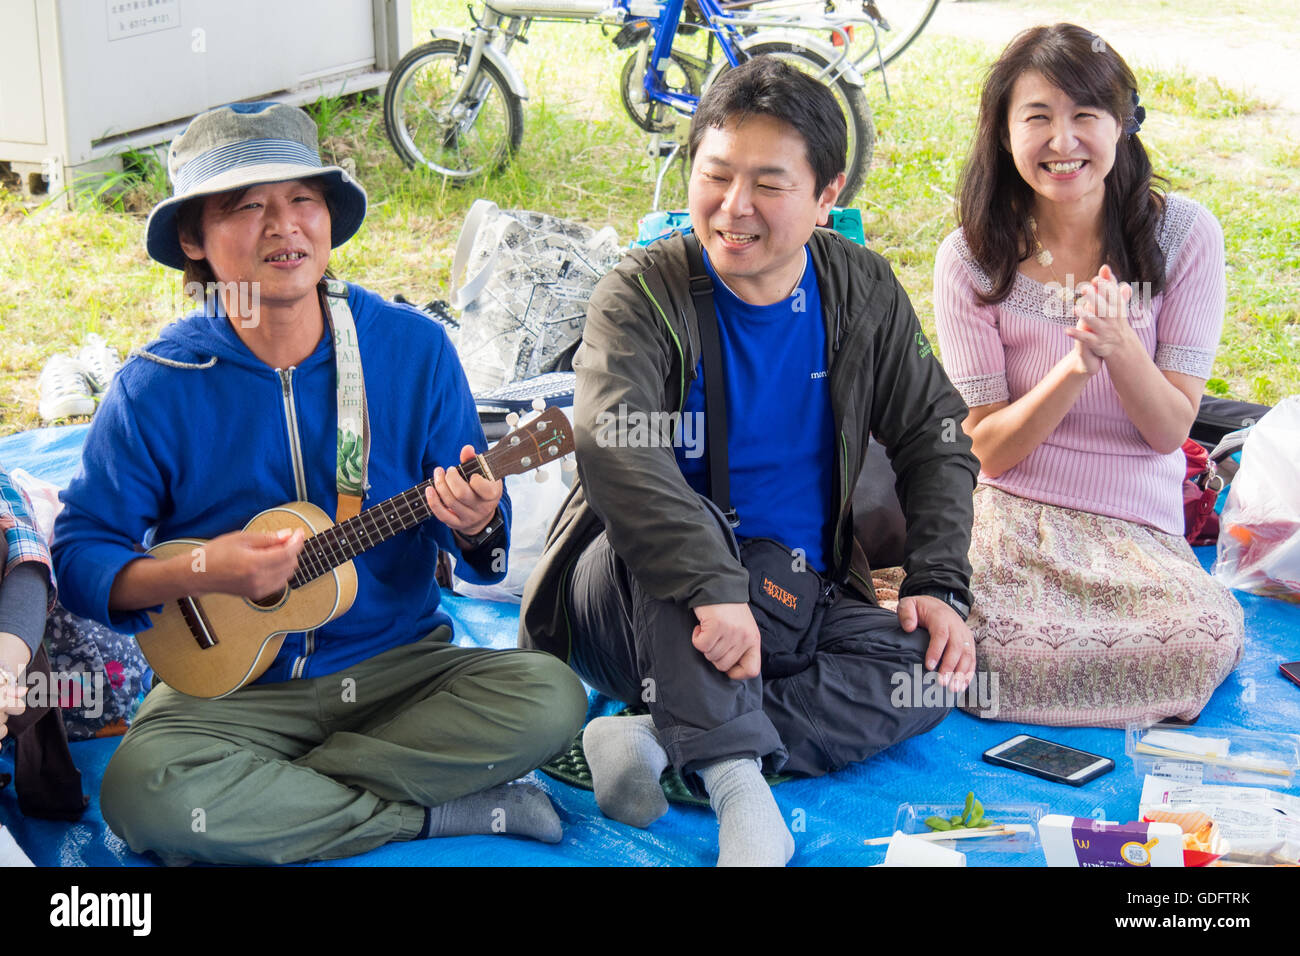 Three Japanese people at a picnic, one of which is playing a ukulele. - Stock Image